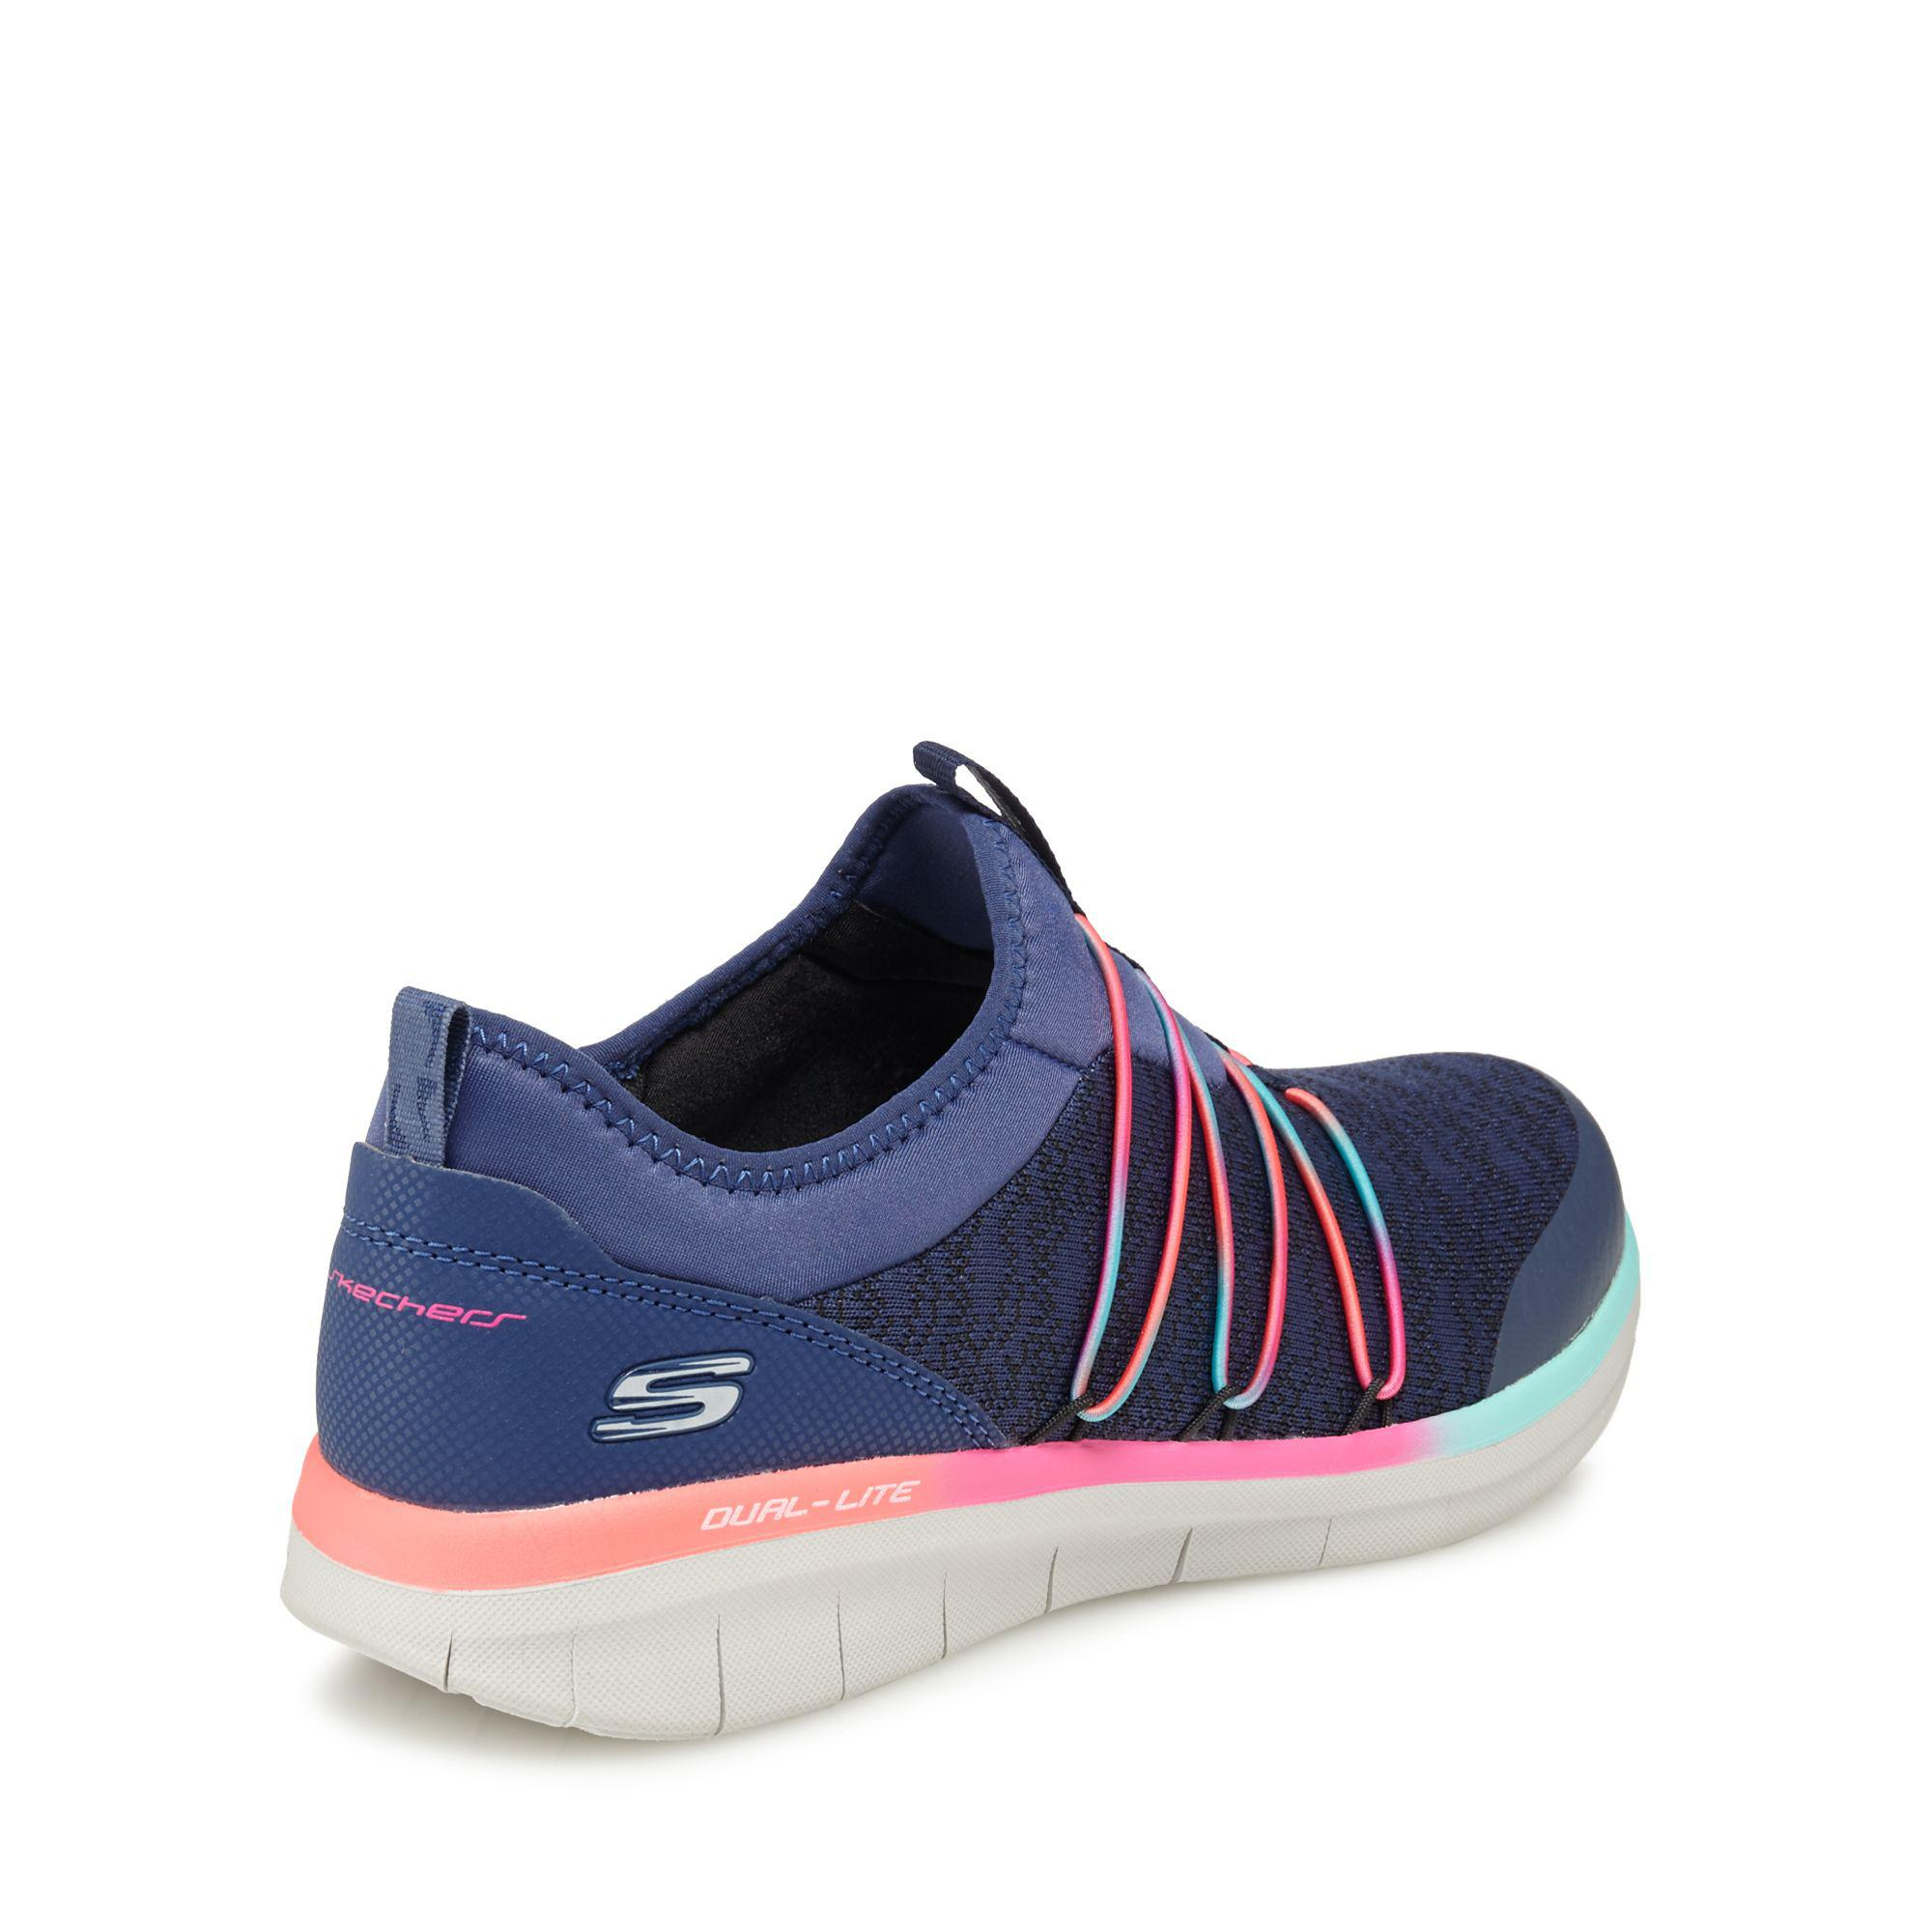 789788e56f05 Skechers Navy Knit  synergy 2.0 Simply Chic  Slip-on Trainers in ...